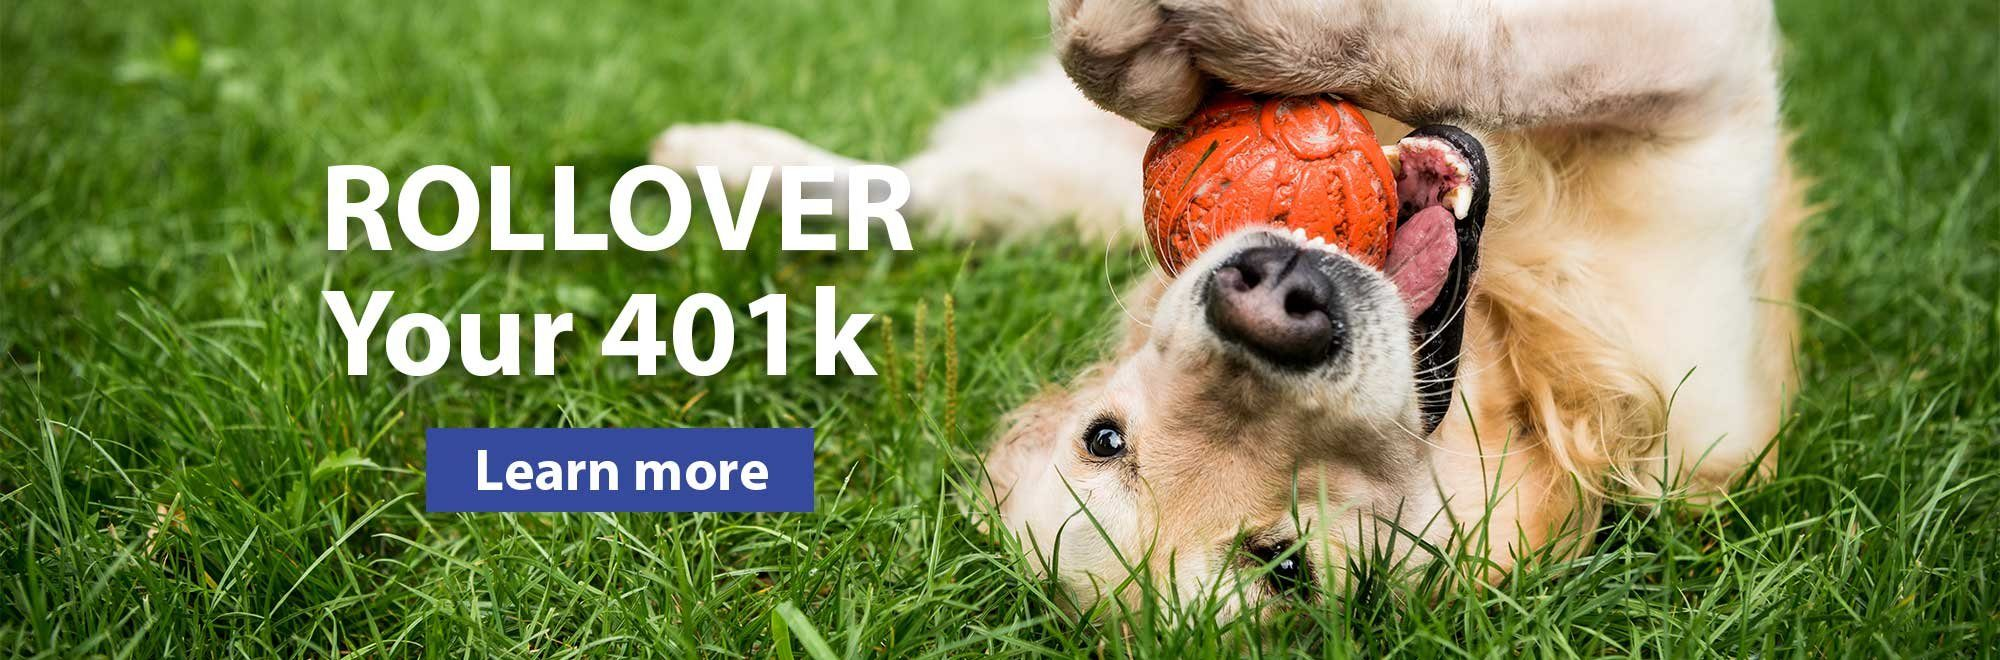 Rollover you 401k. Learn more.